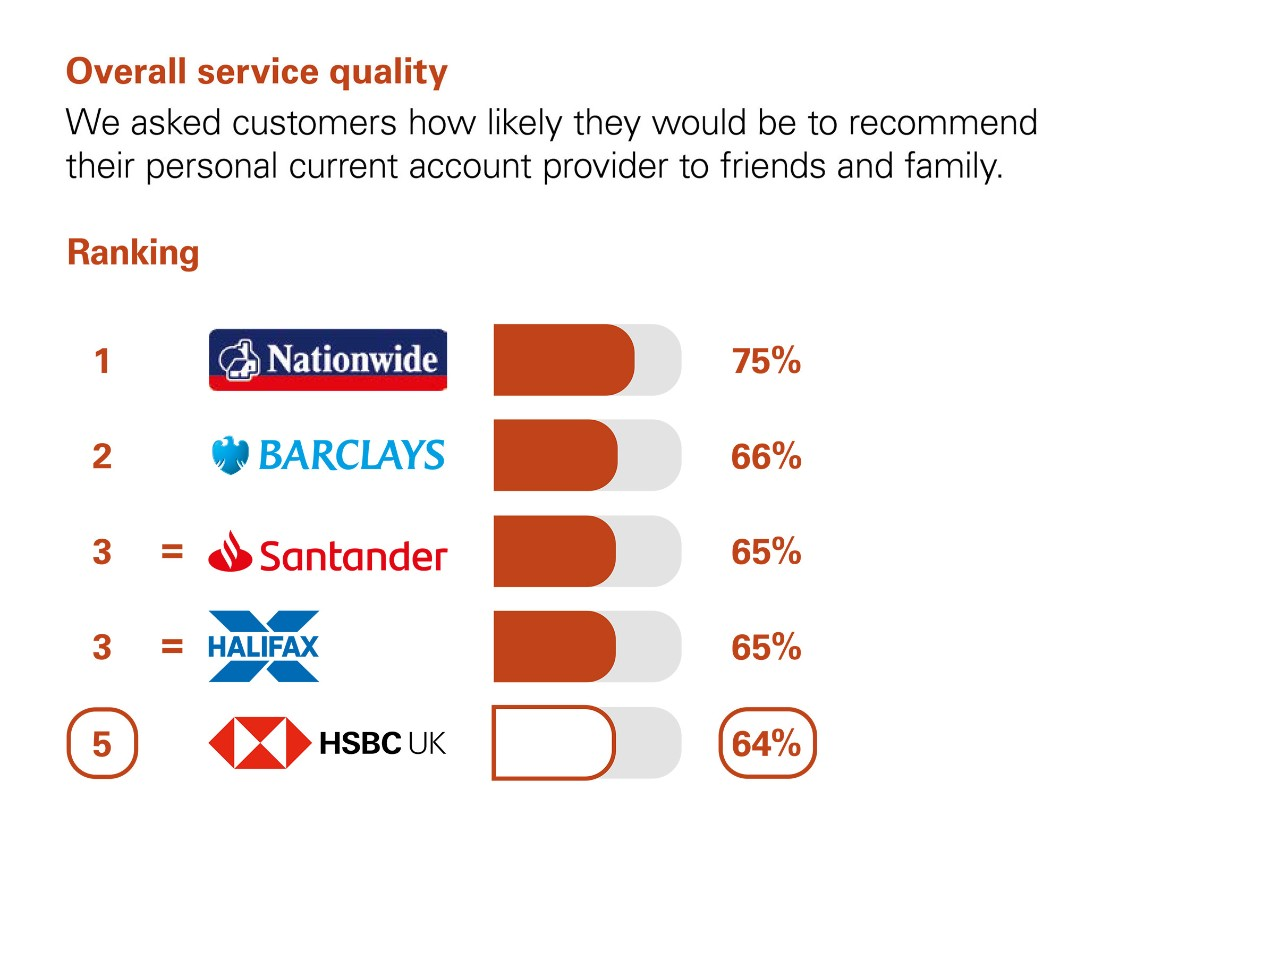 Overall Service Quality. We asked customers how likely they would be to recommend their personal current account provider to friends and family. Ranking: 1 Nationwide 75% 2 Barclays 66%. 3 Equal Santander and Halifax 65%. 5 HSBC UK 64%.